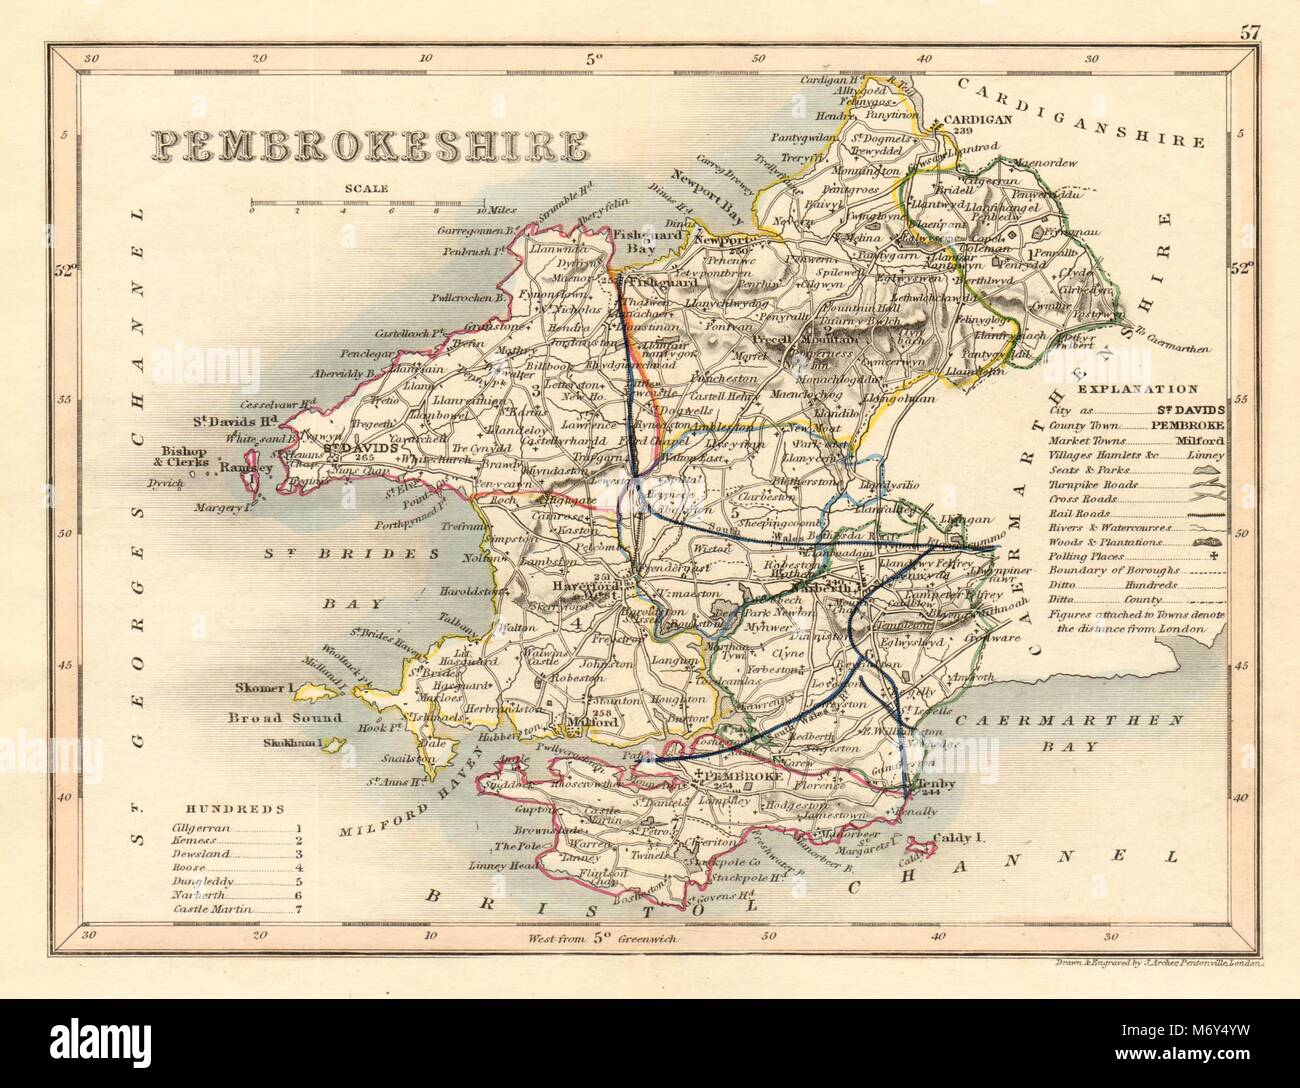 Humorous Merionethshire County Map By Archer & Dugdale Maps, Atlases & Globes Seats Canals Polling Places 1845